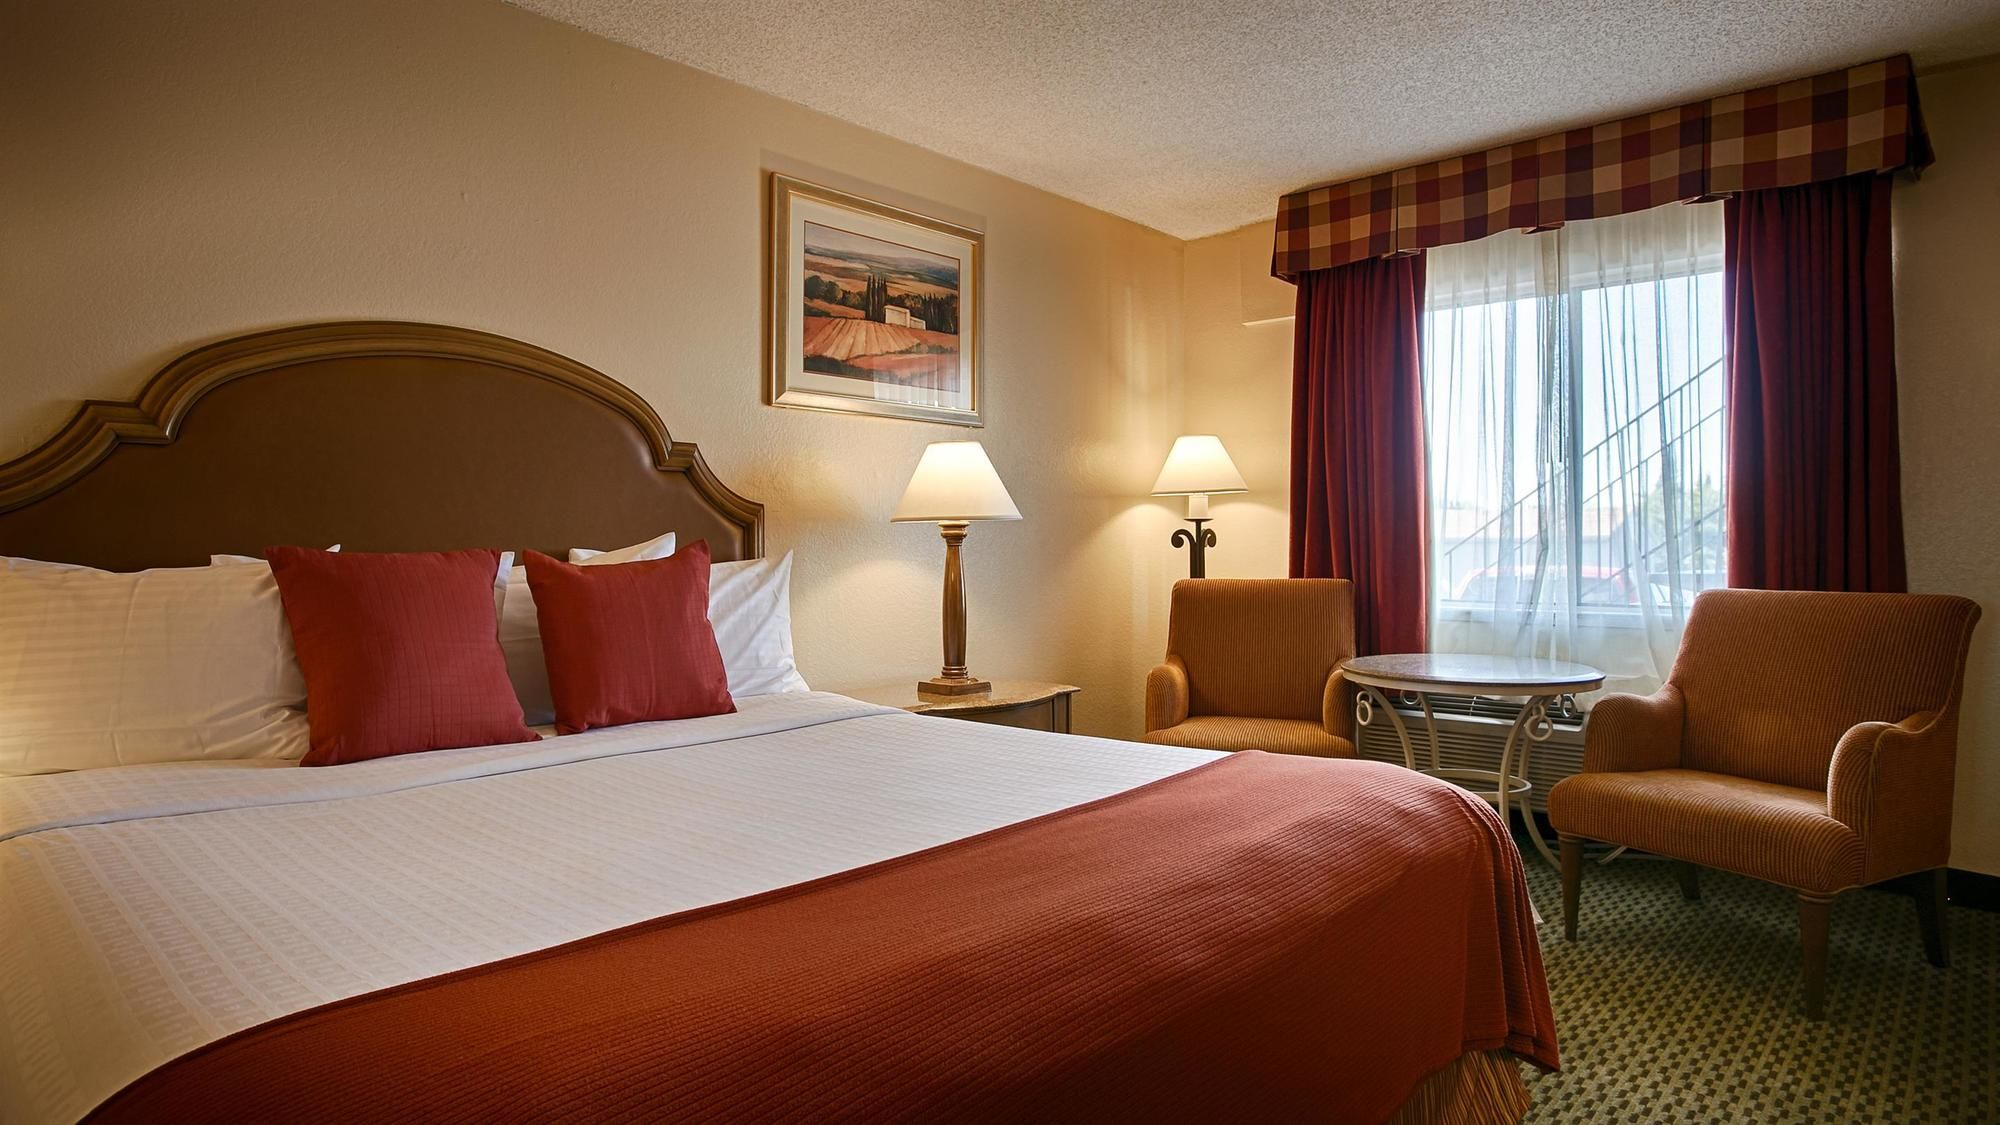 Roseville Hotel Coupons for Roseville, California - FreeHotelCoupons.com